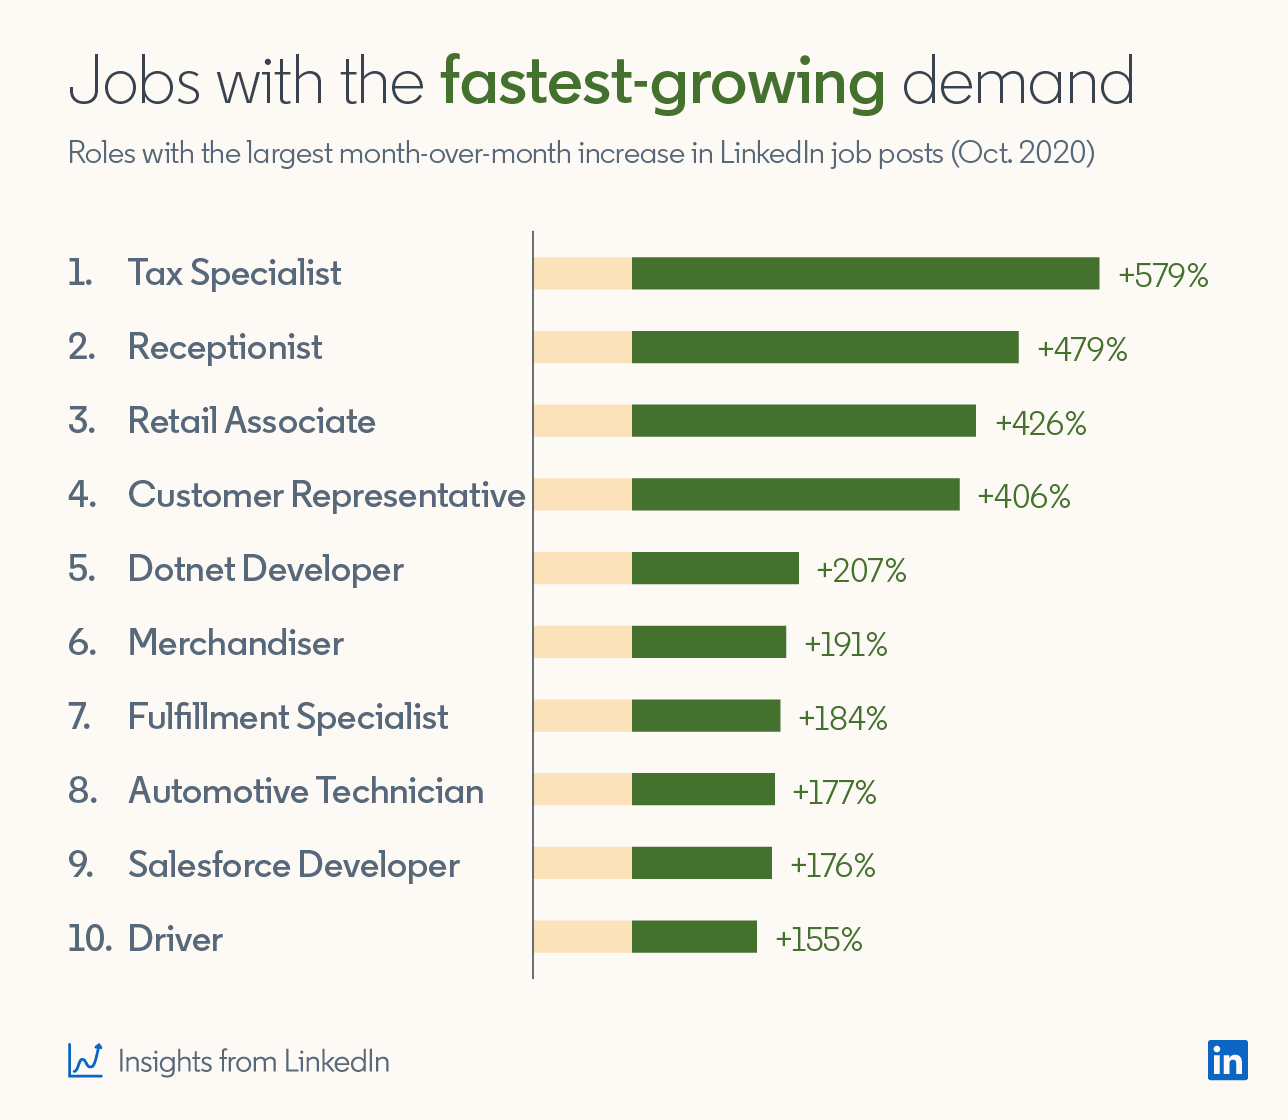 Jobs with the fastest-growing demand Roles with the largest month-over-month increase in LinkedIn job posts (Oct 2020) 1. Tax Specialist +579% 2. Receptionist +479% 3. Retail Associate +426% 4. Customer Representative +406% 5. Dotnet Developer +207% 6. Merchandiser +191% 7. Fulfillment Specialist +184% 8. Automotive Technician +177% 9. Salesforce Developer +176% 10. Driver +155% (Insights from LinkedIn)